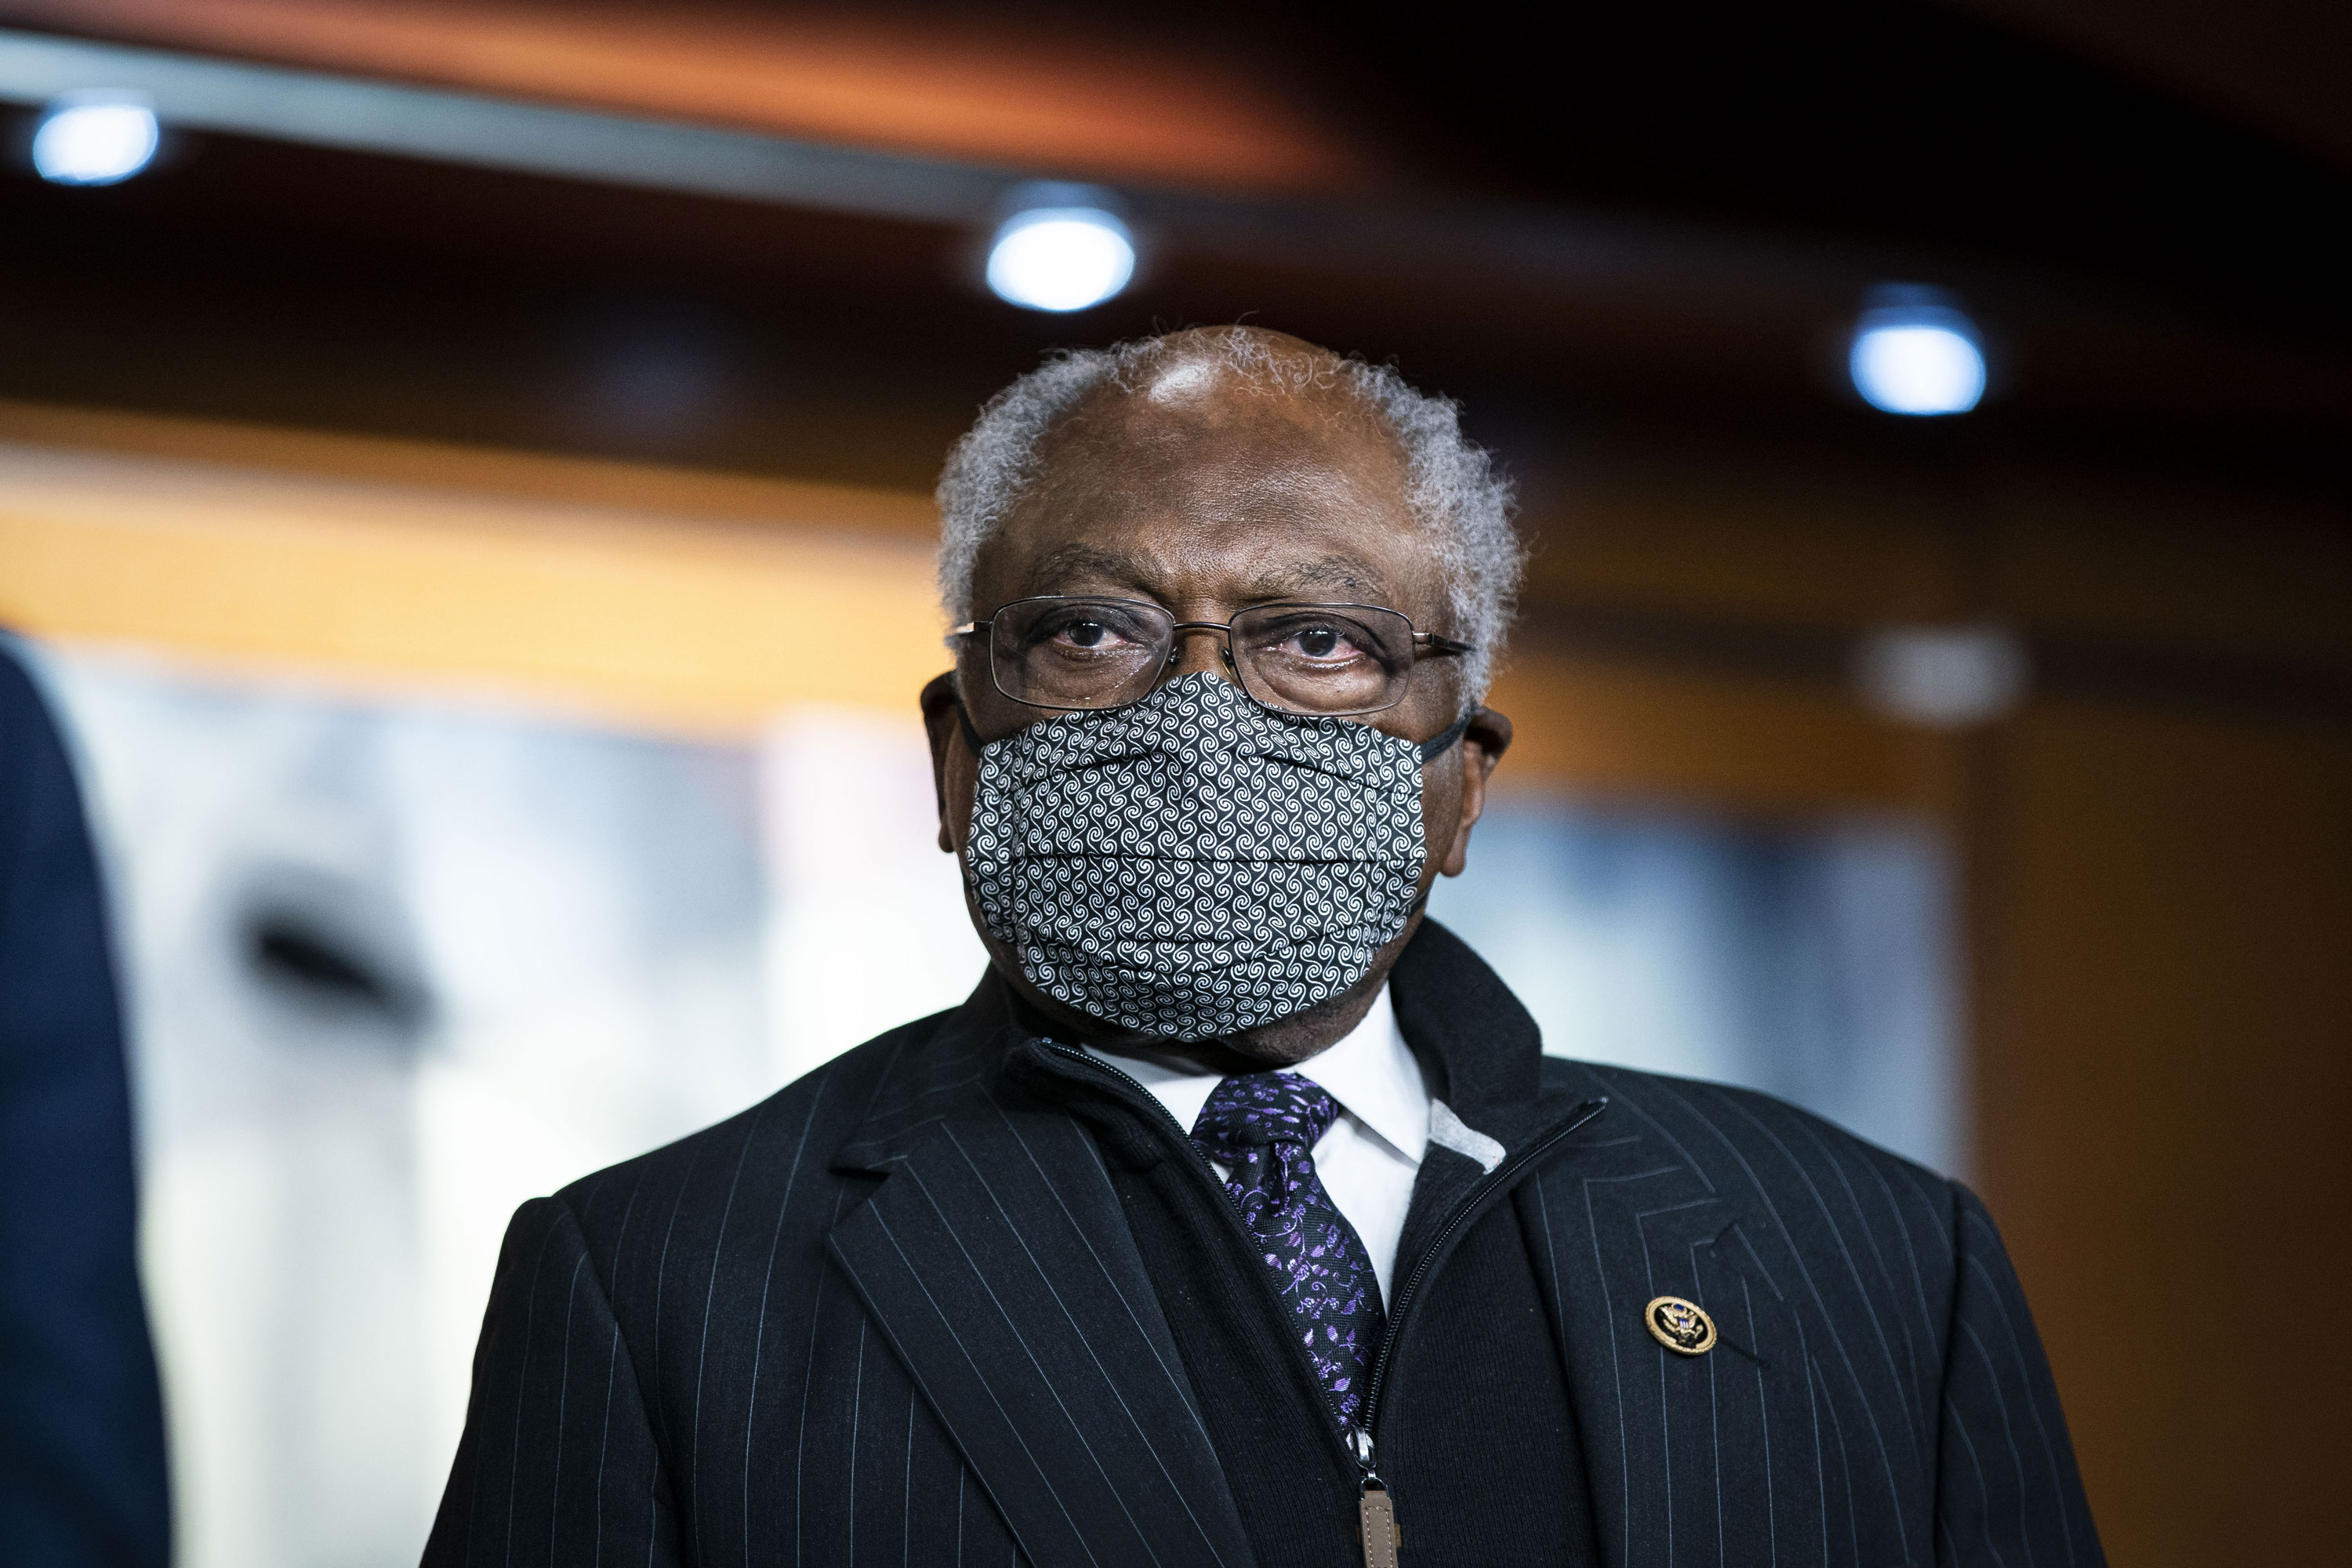 Rep. Jim Clyburn attends a news conference at the Capitol on November 18, 2020.